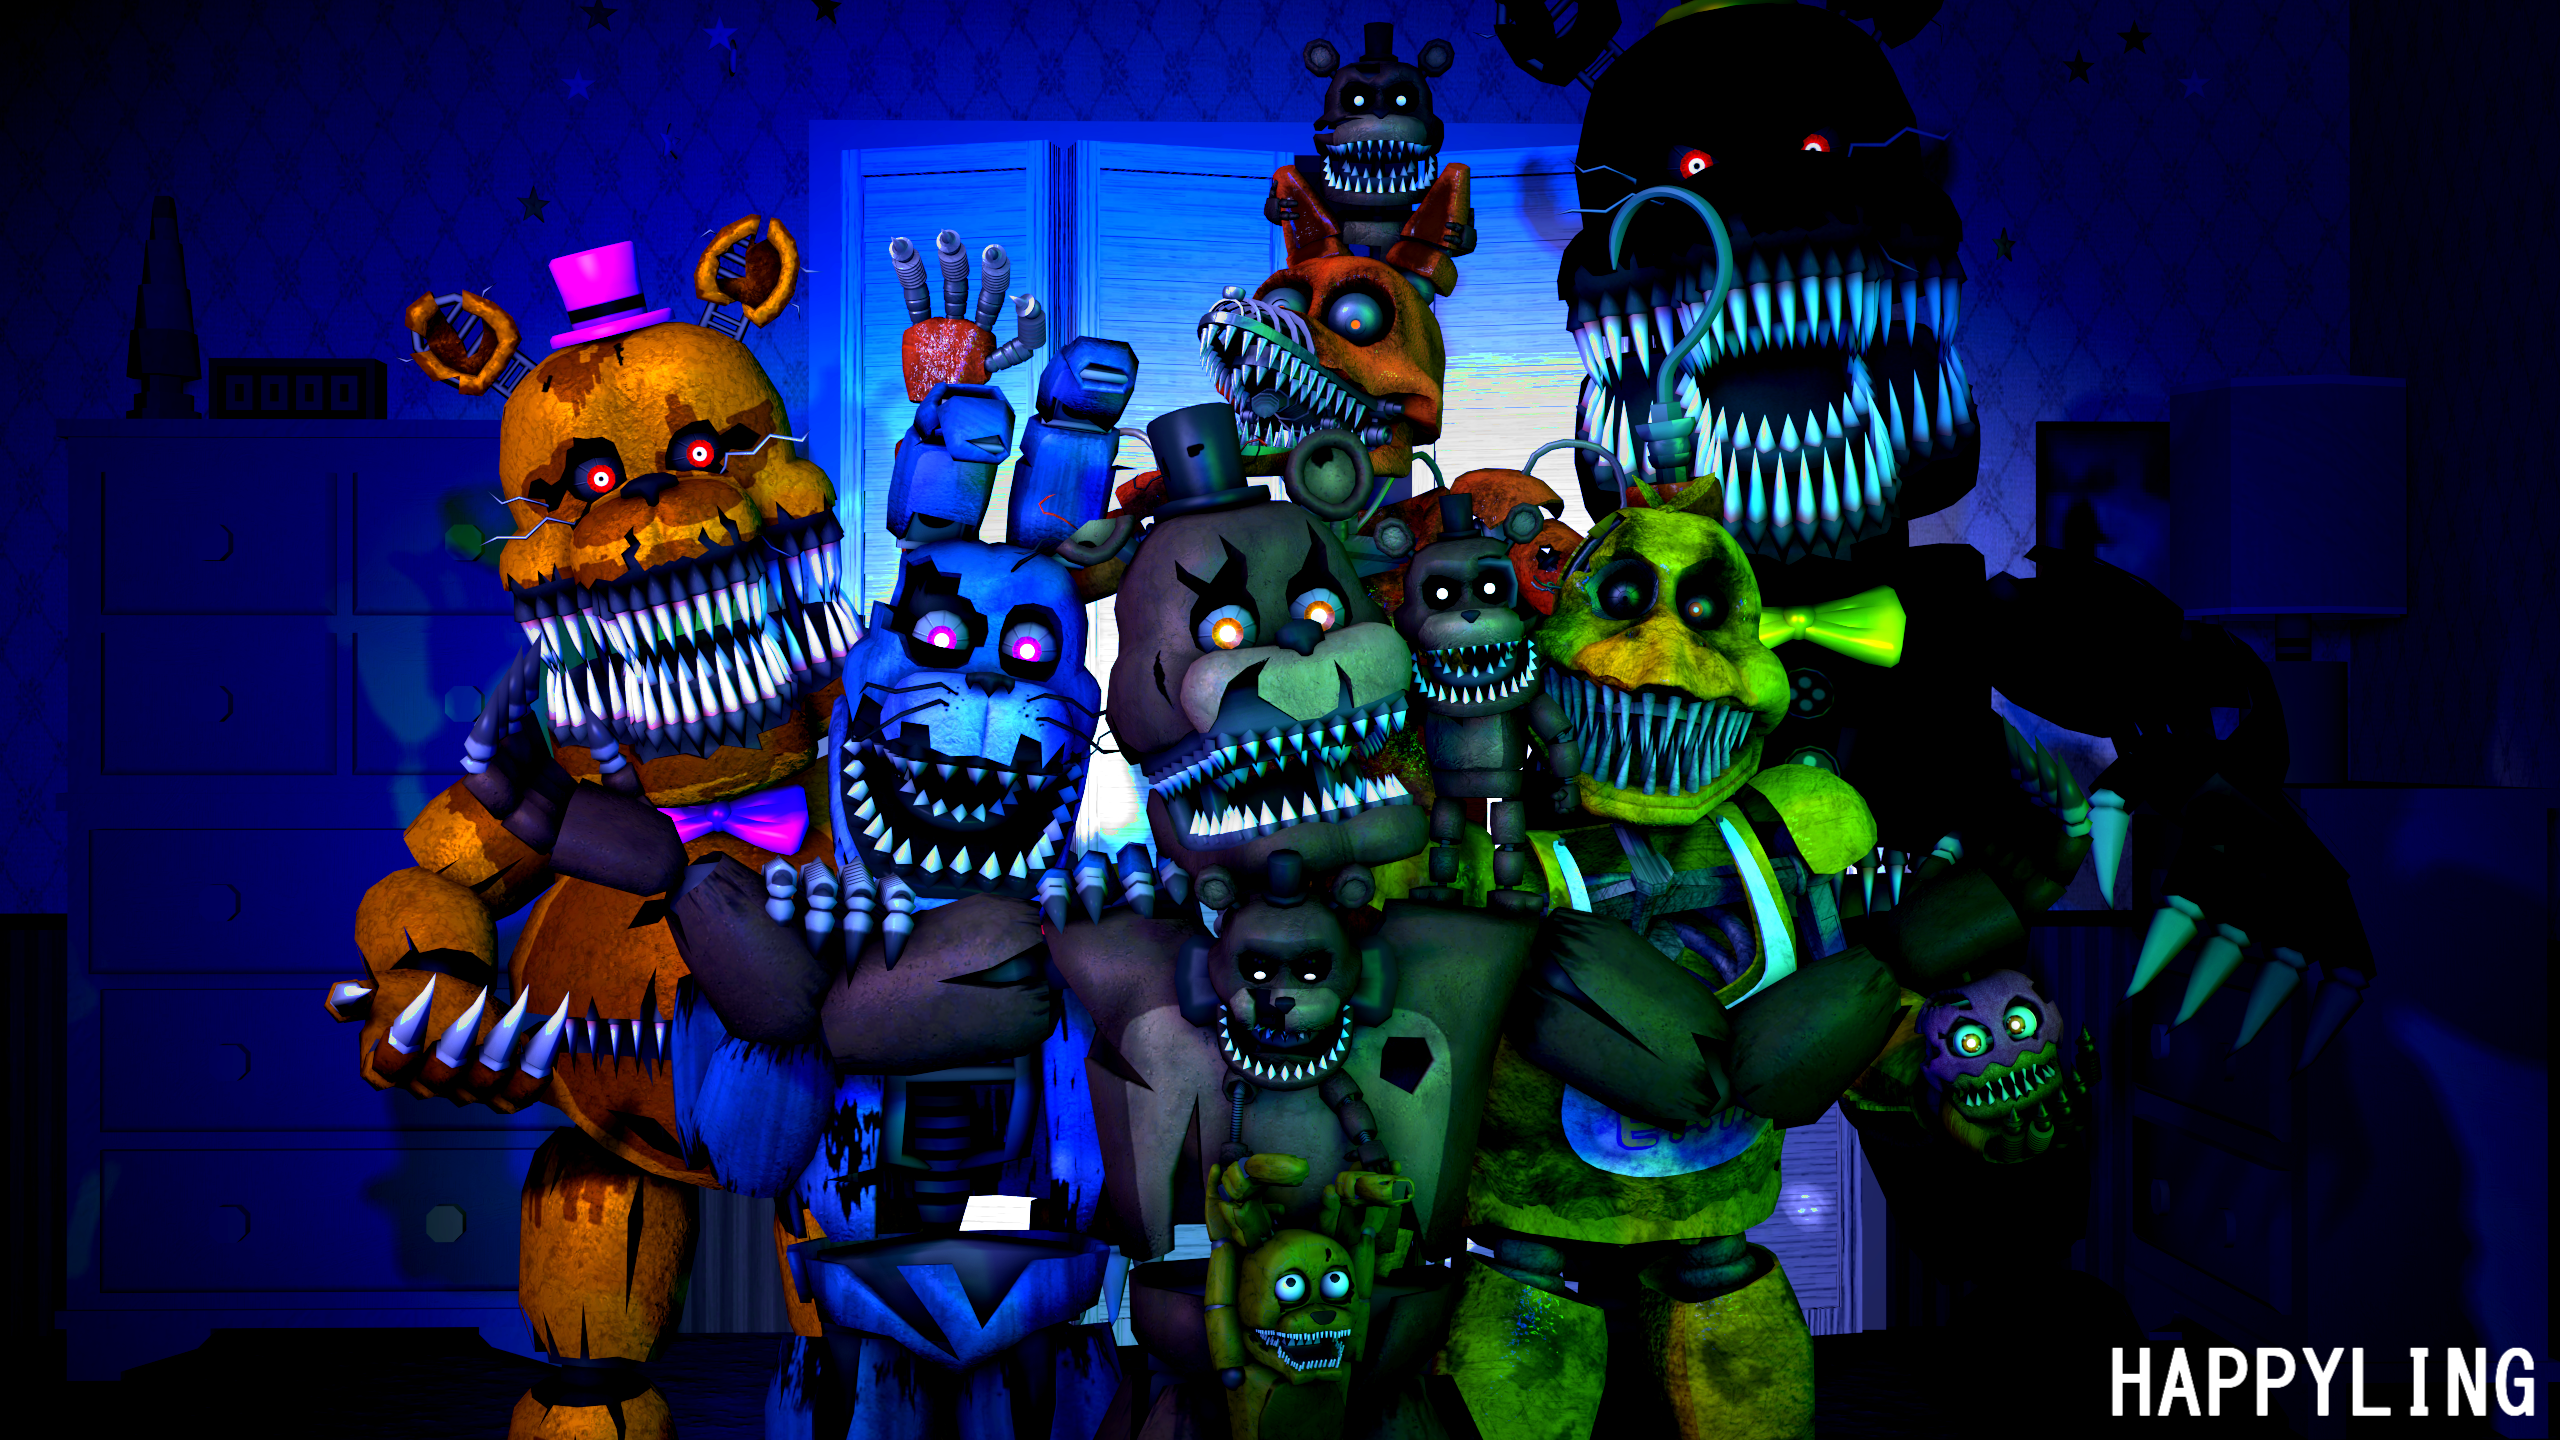 Five nights at freddys backgrounds 2560x1440 myideasbedroom com